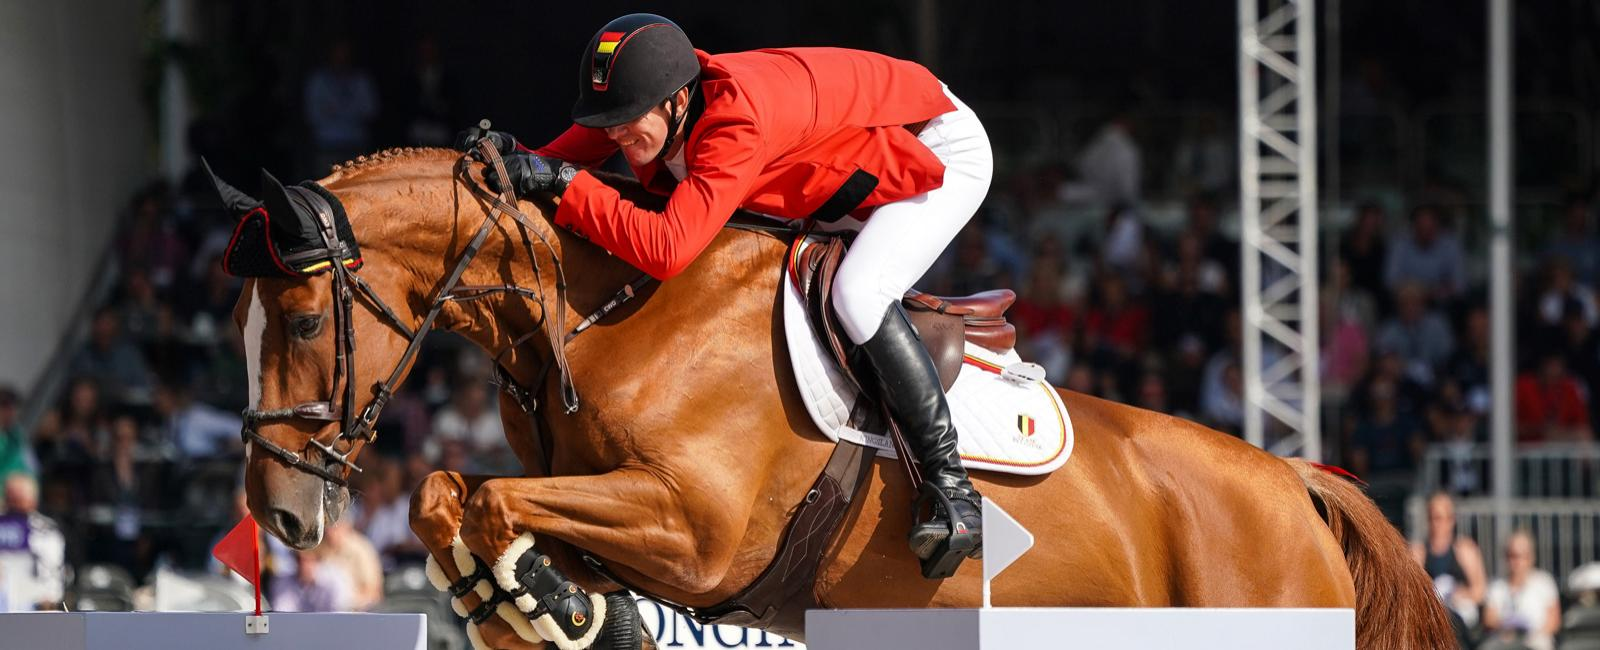 Longines FEI European Championships ; Sports équestres ; 2019